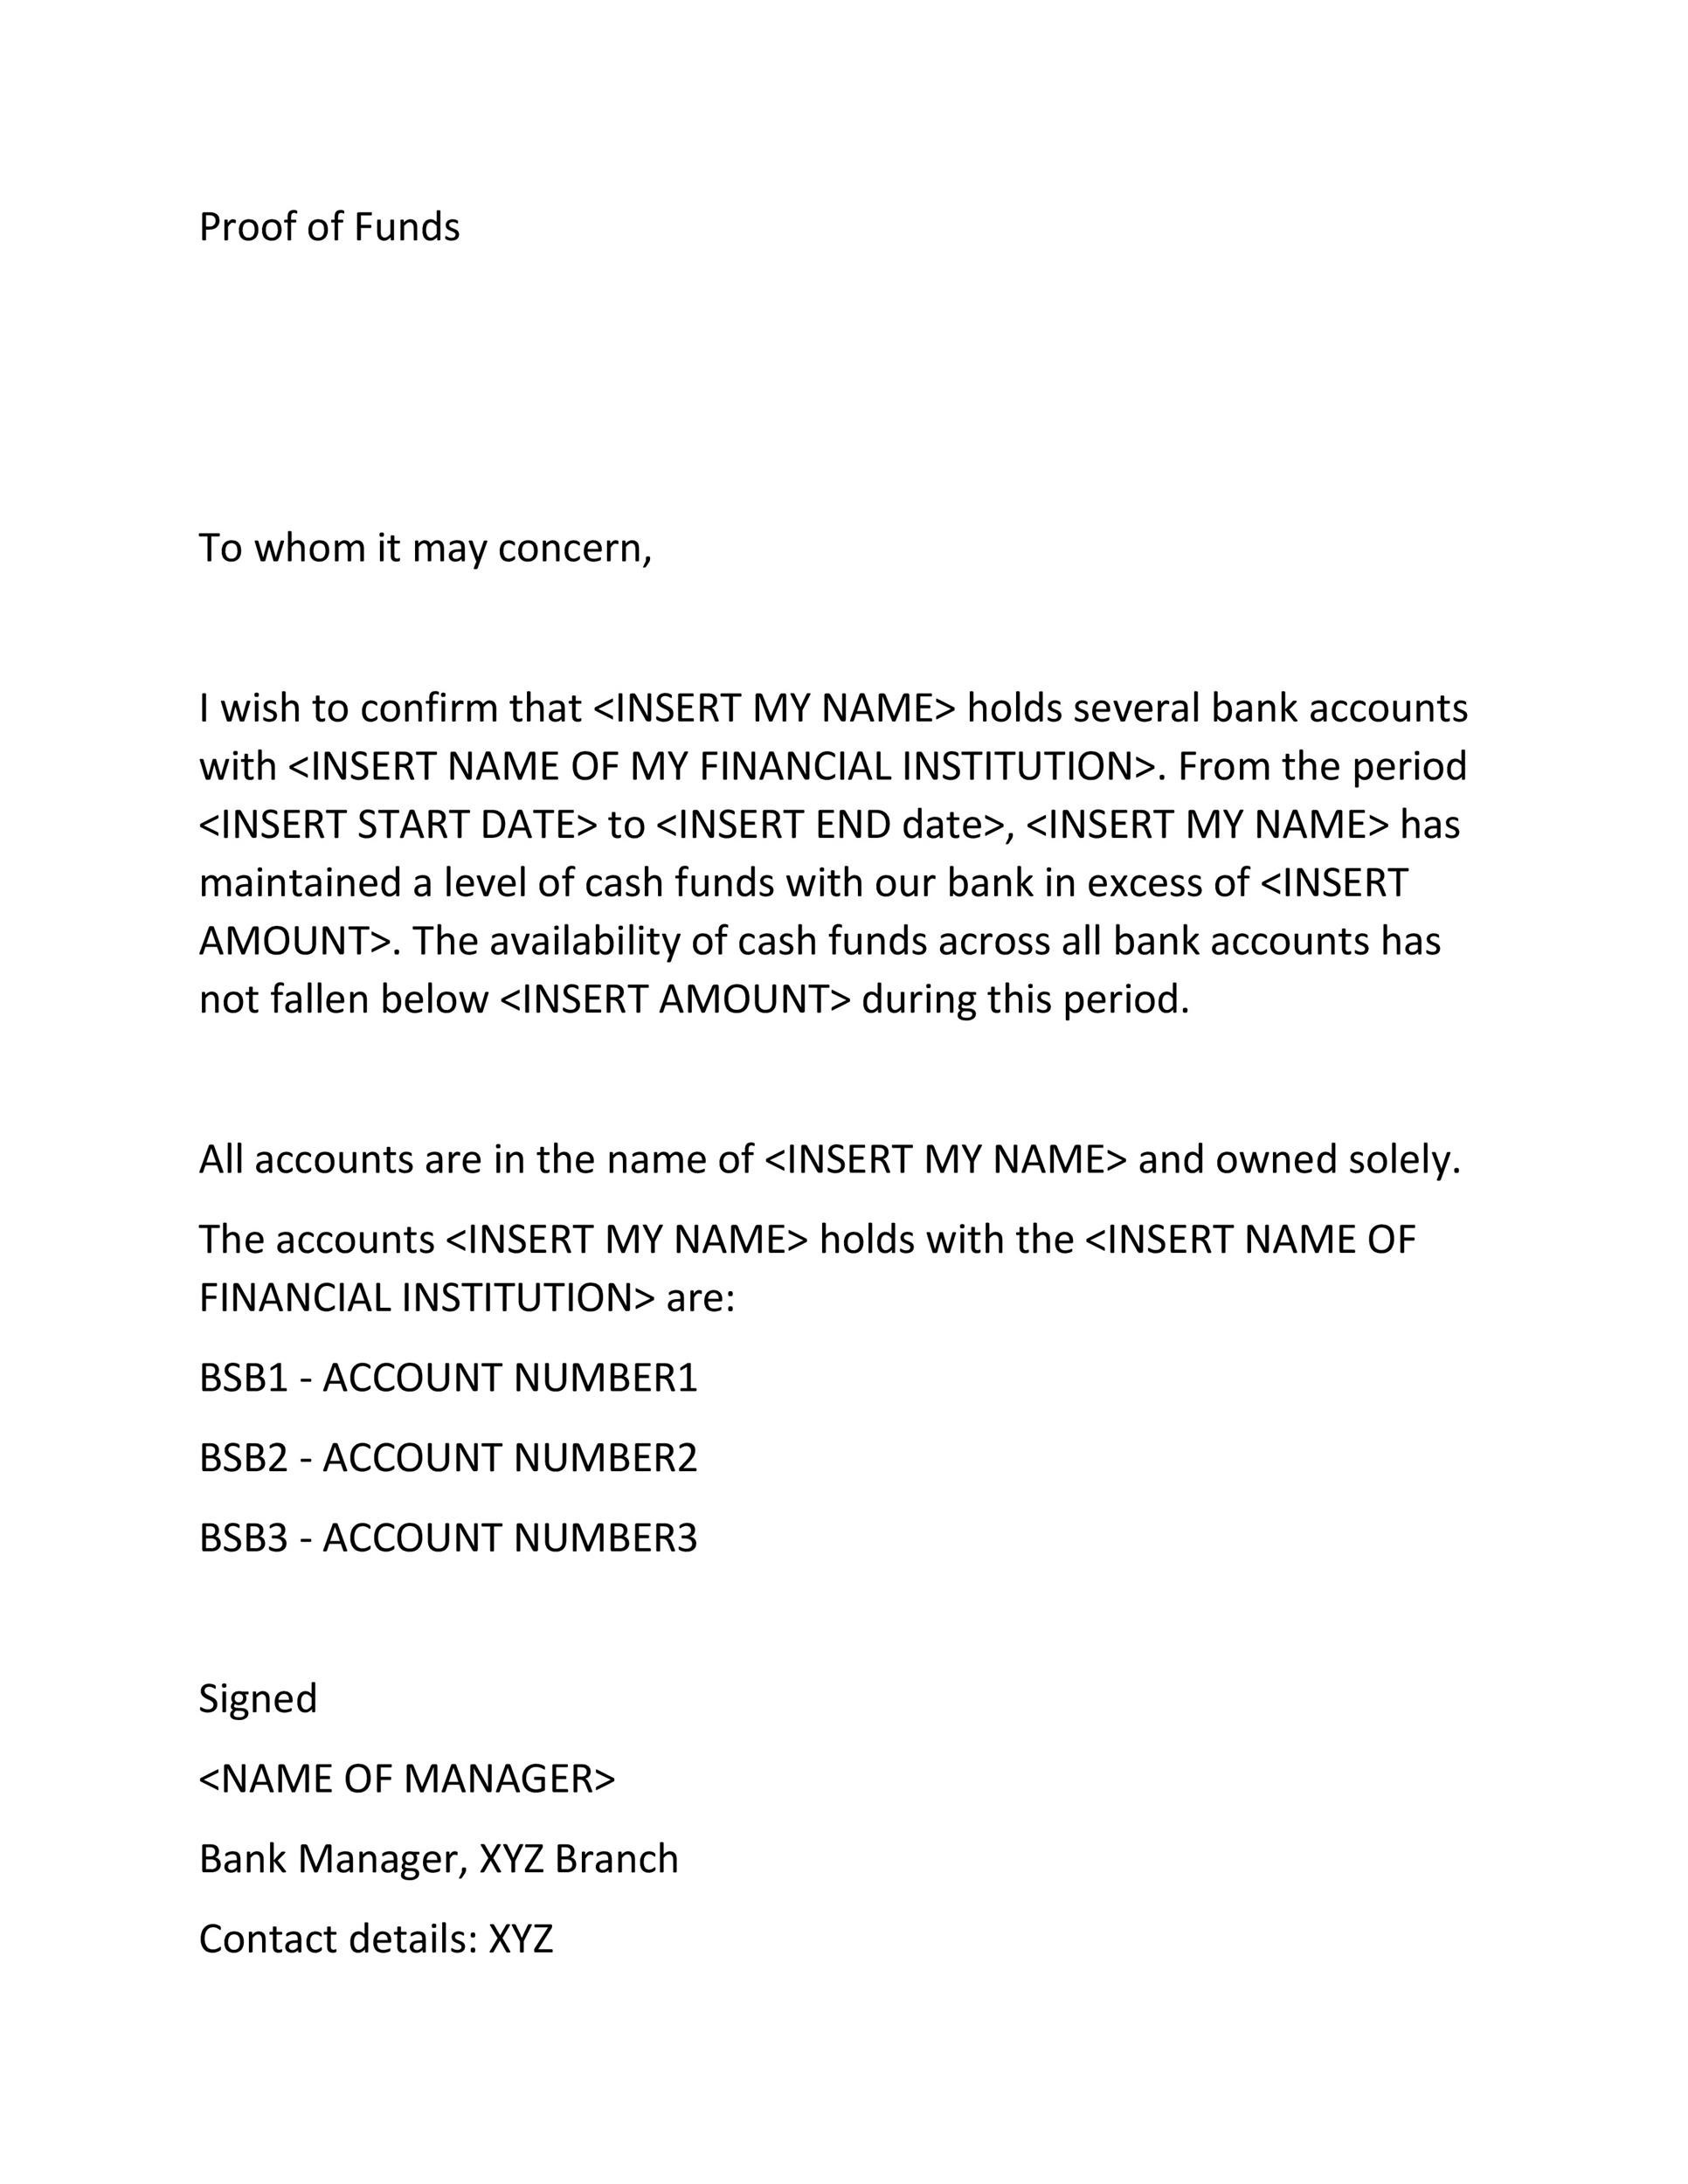 Free proof of funds letter template 23